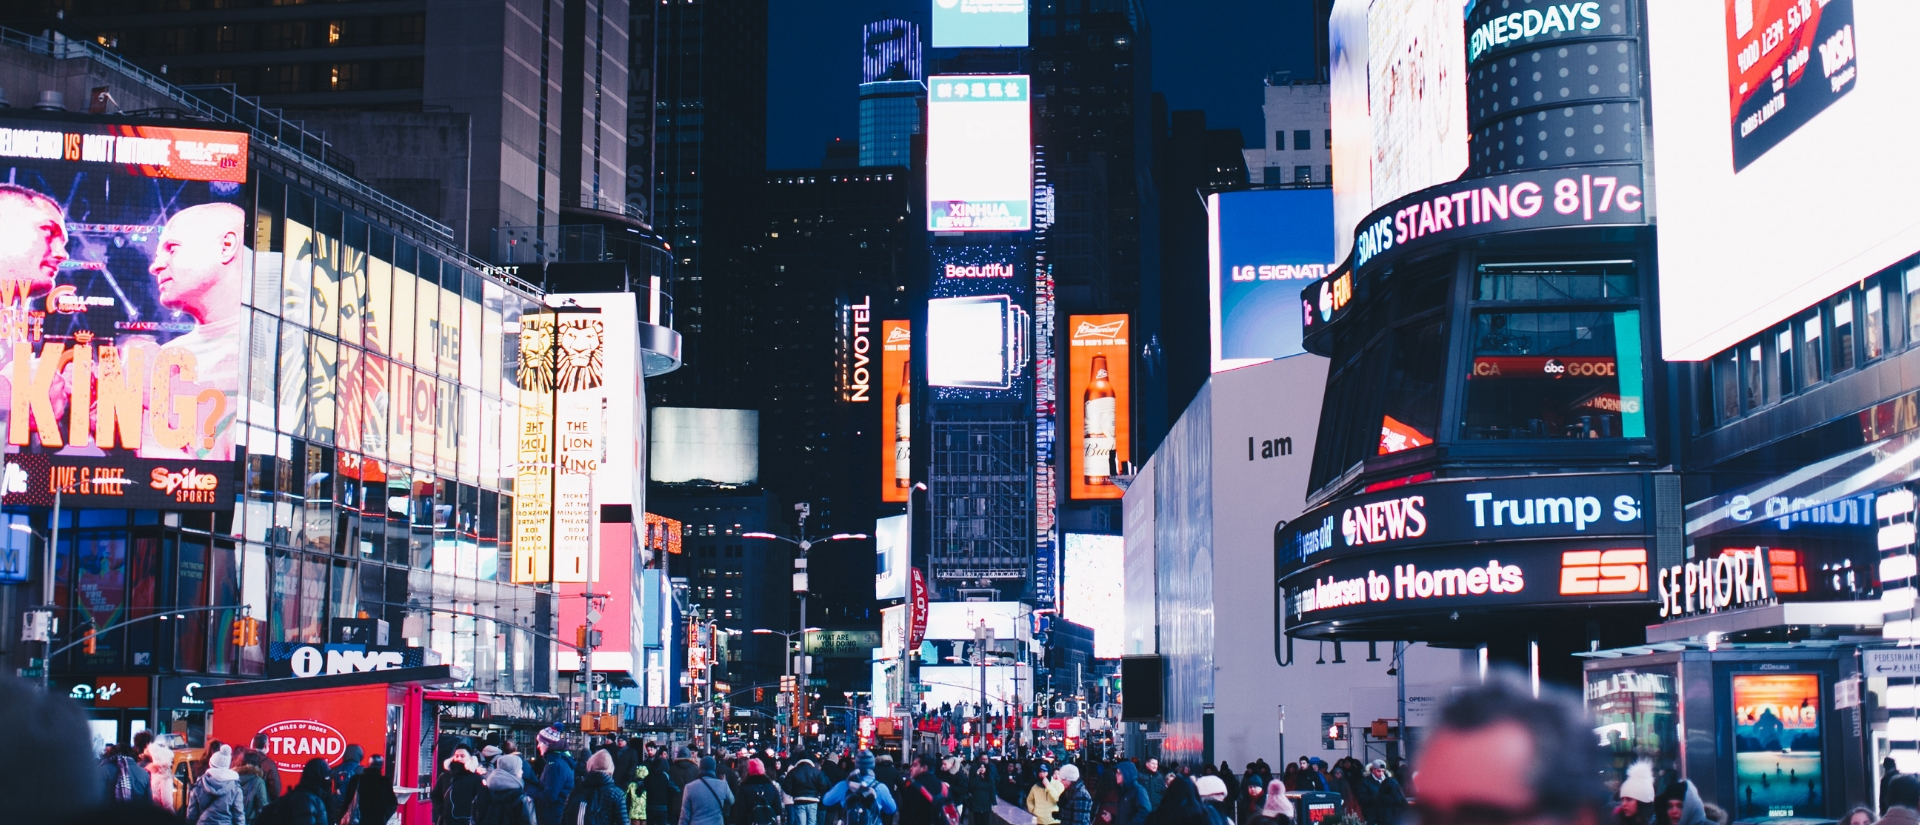 digital signage displays showing content in busy new york street